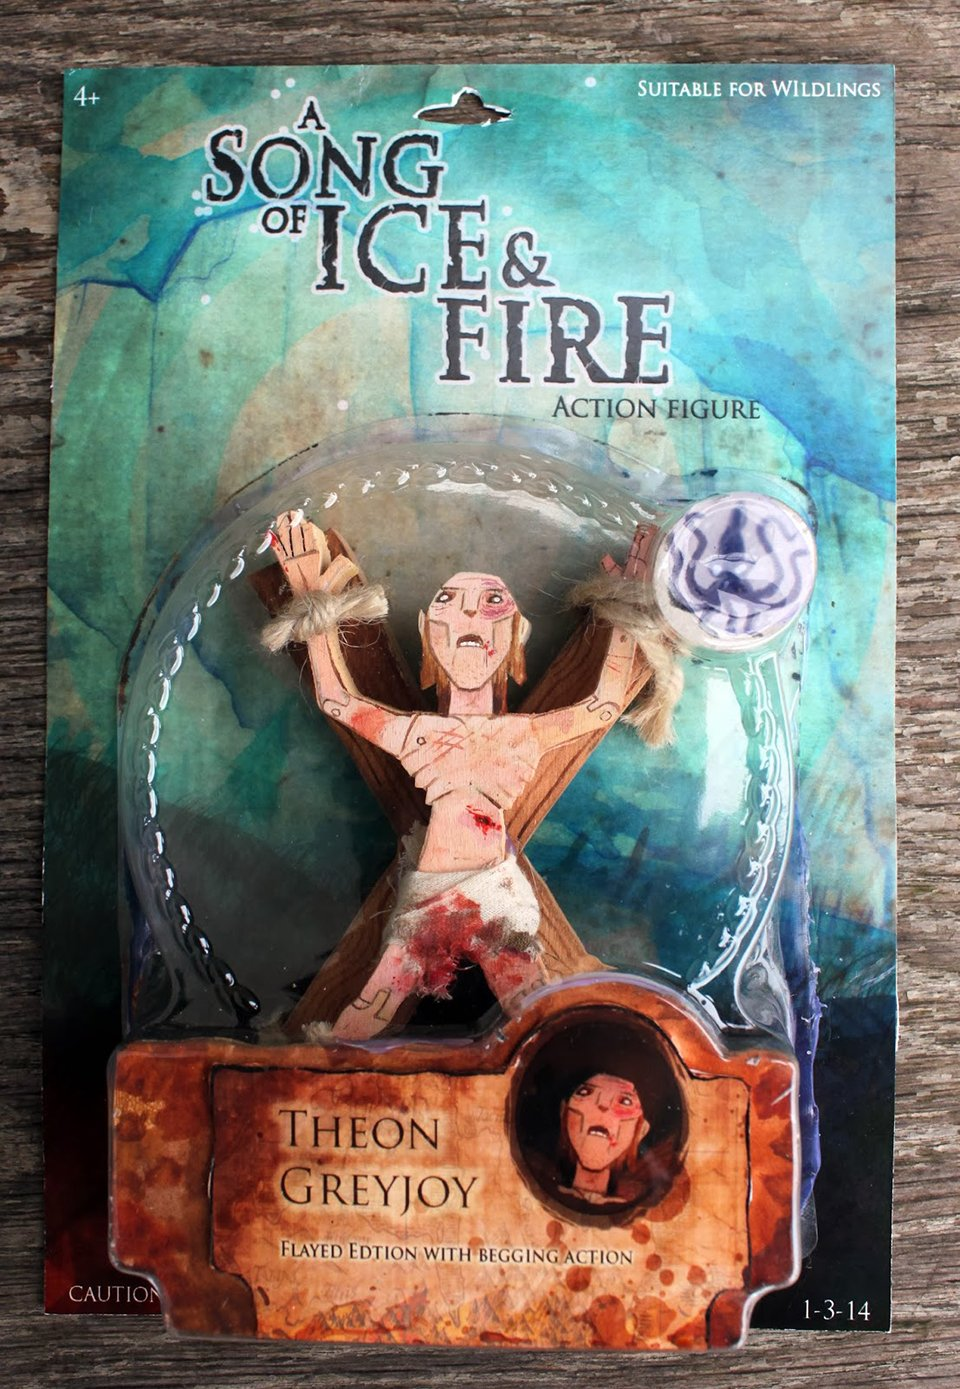 A Song of Ice and Fire Battle Damaged Action Figures: Toys of Wood and Paint - Technabob